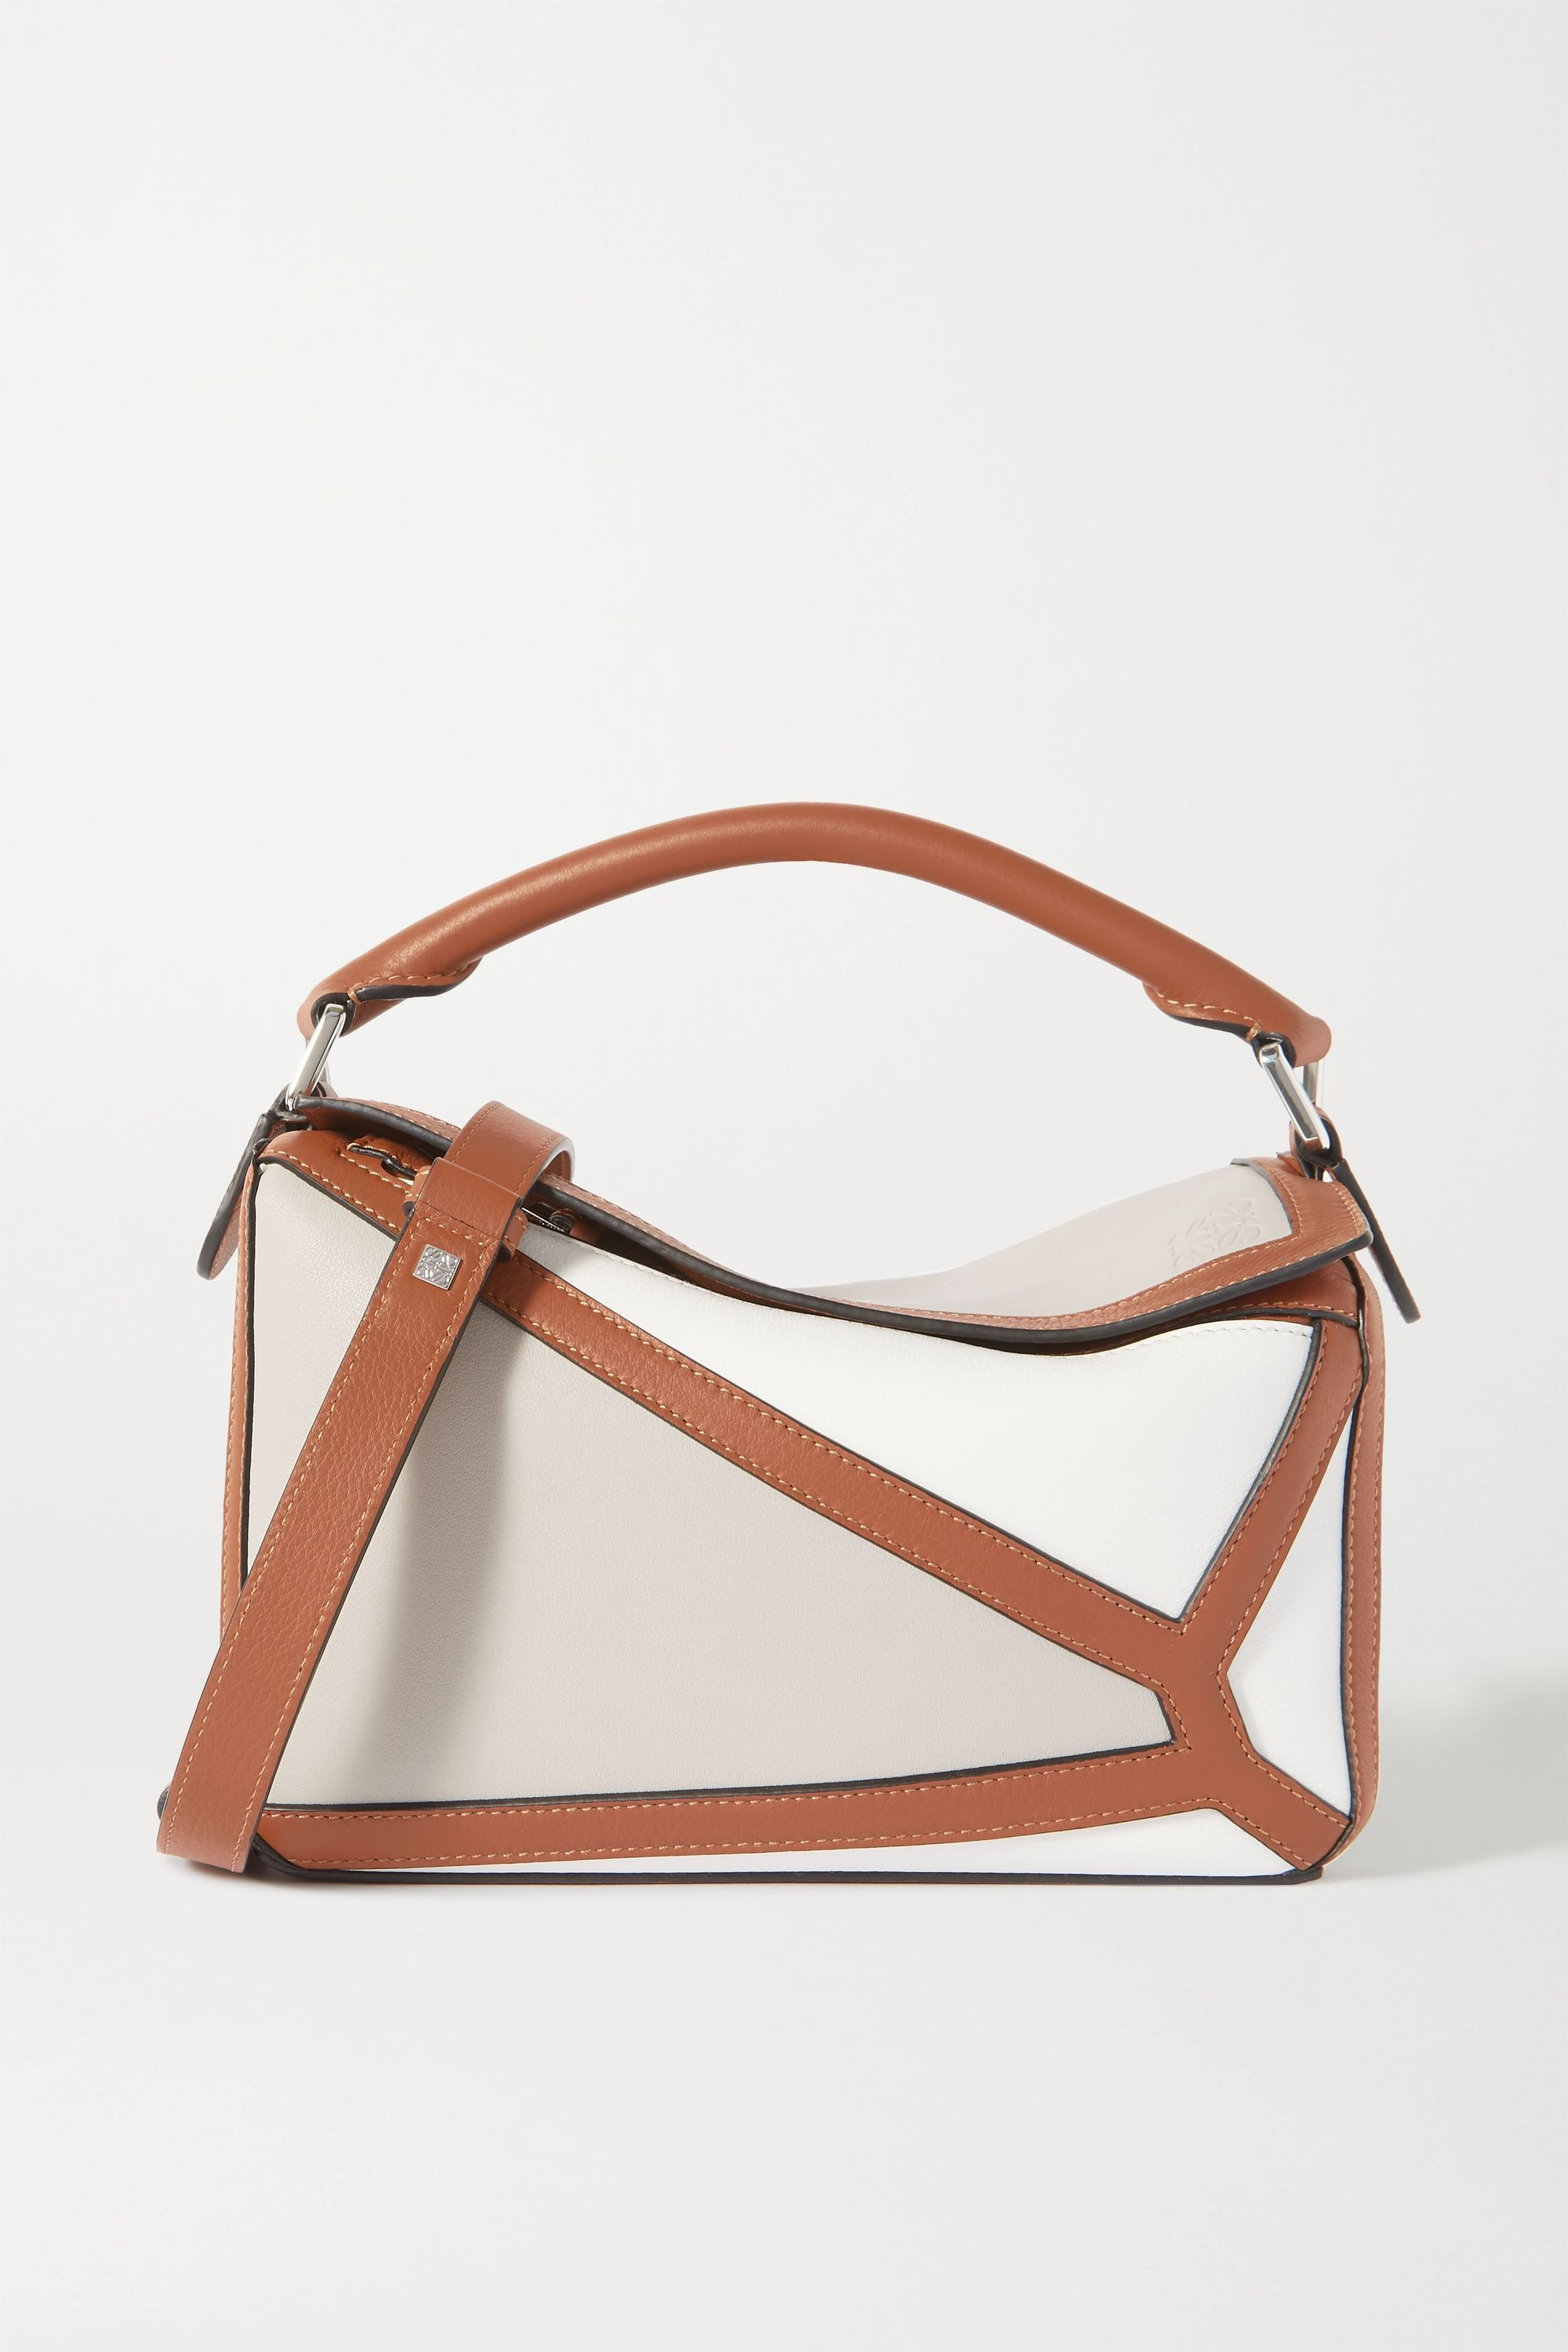 Loewe Puzzle small two-tone leather shoulder bag